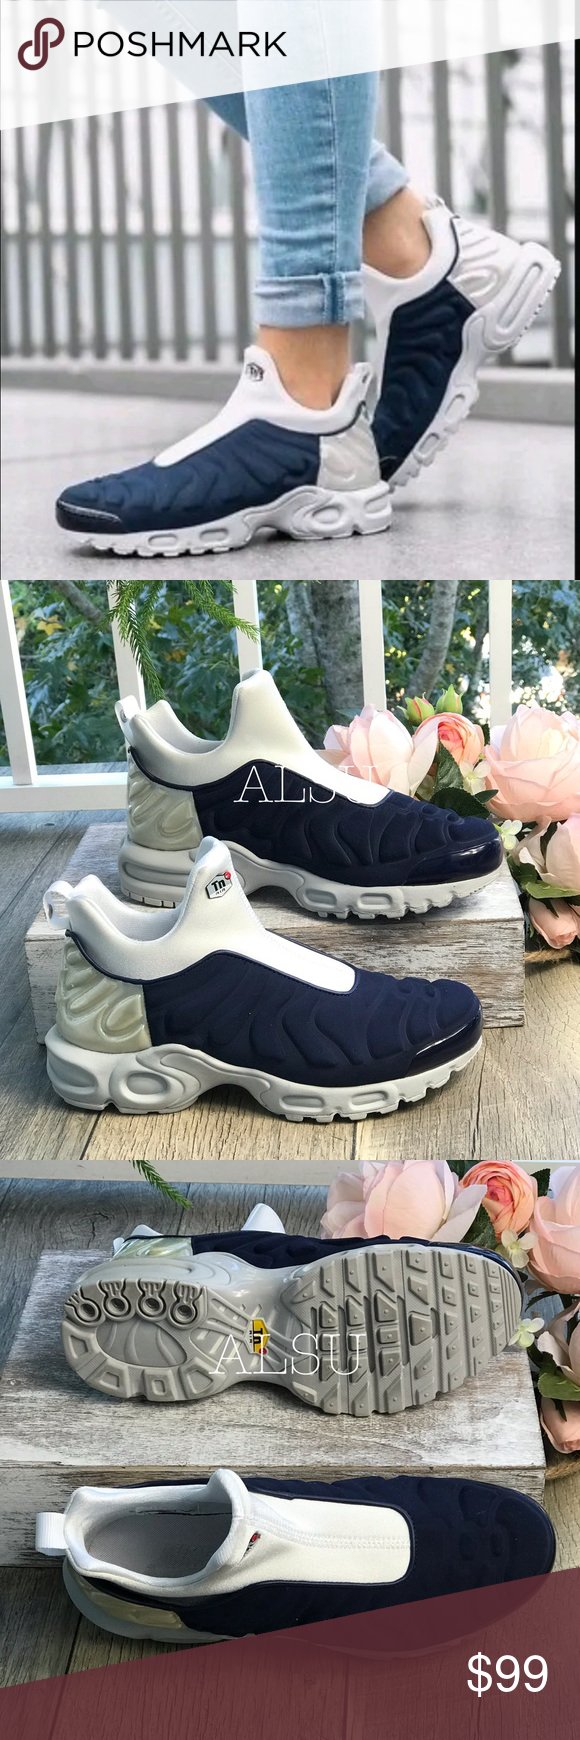 a9551365b3 Nike Air Max Plus Slip SP Midnight Navy Silver W Brand new with box, no